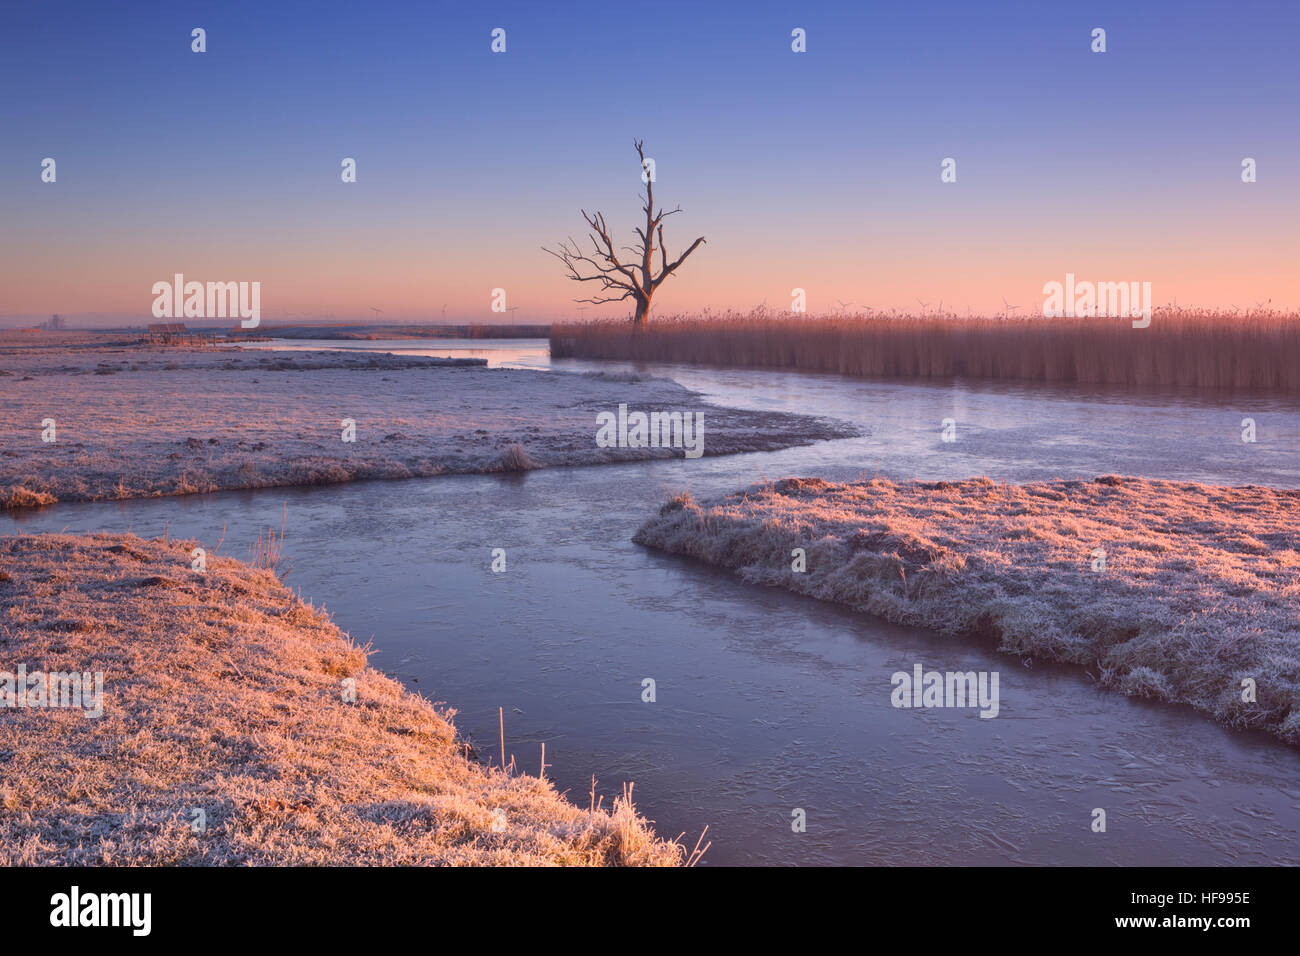 Winter in a Dutch polder landscape with a lonely tree at sunrise. - Stock Image